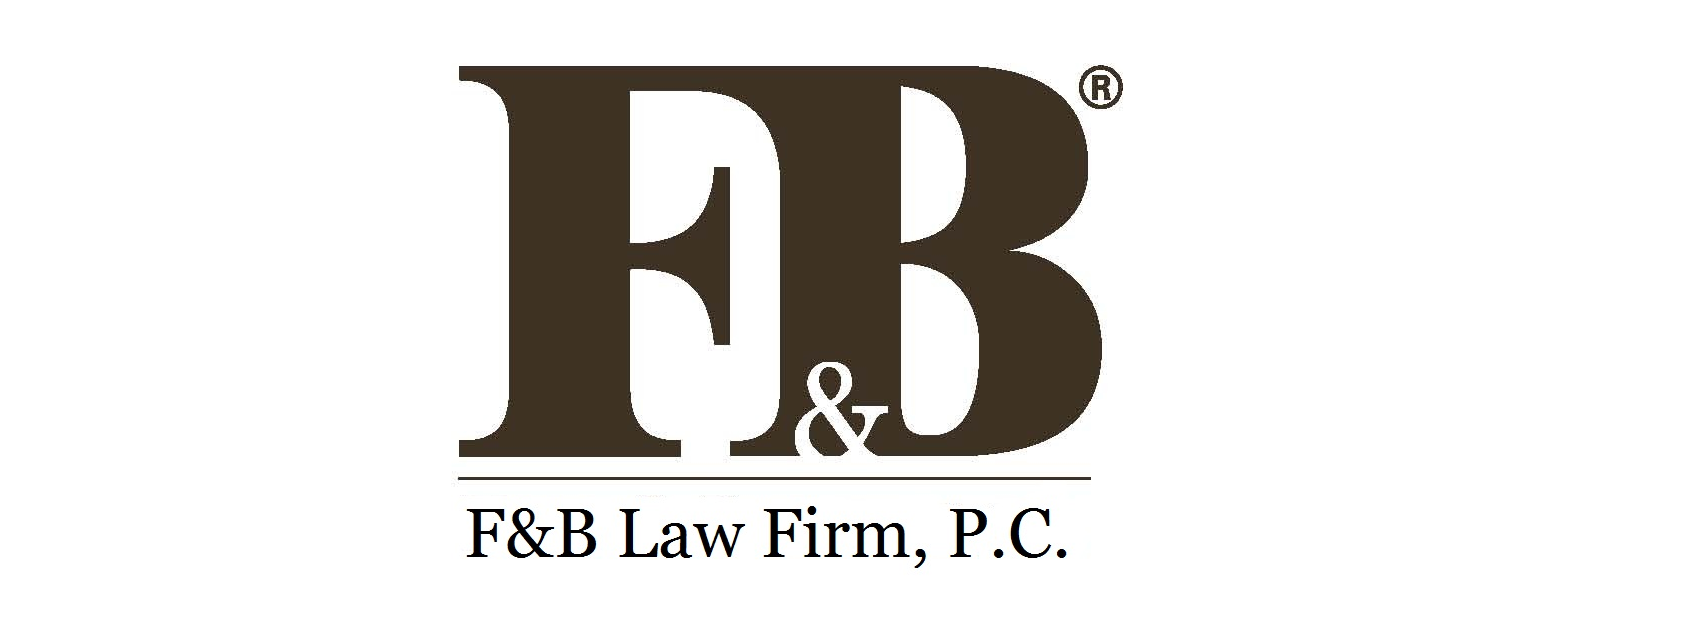 Bronze - F&B Law Firm PC - Logo